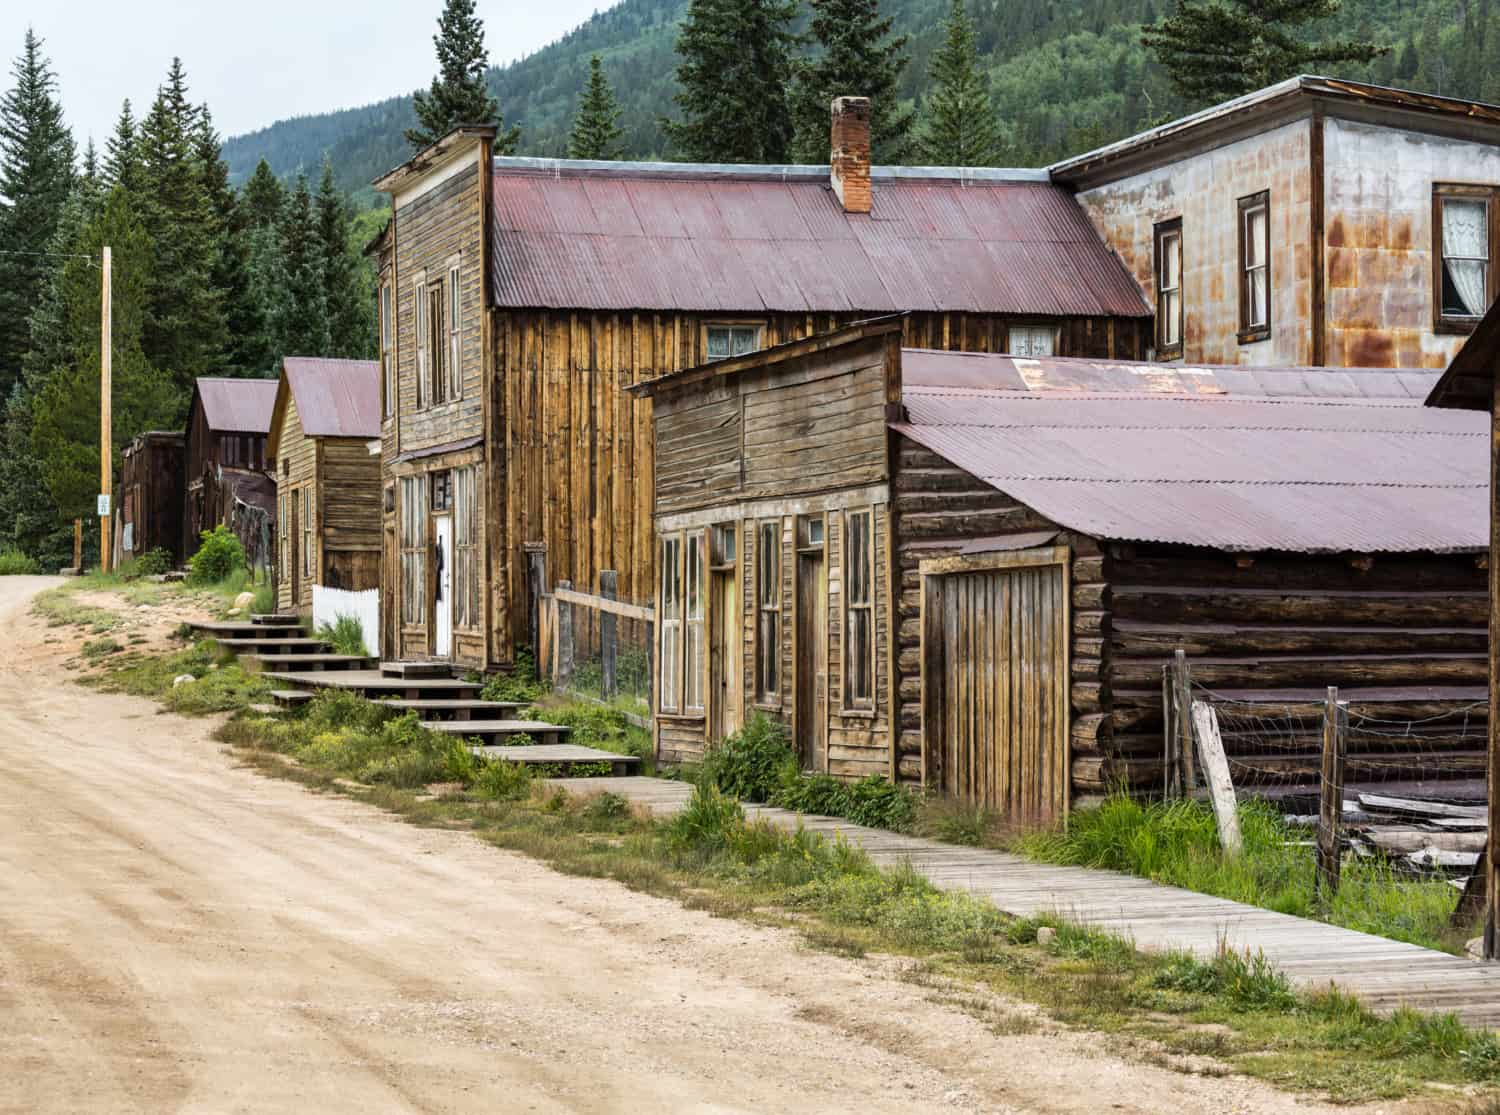 A main street in the ghost town of St. Elmo in Colorado, suitable for pets